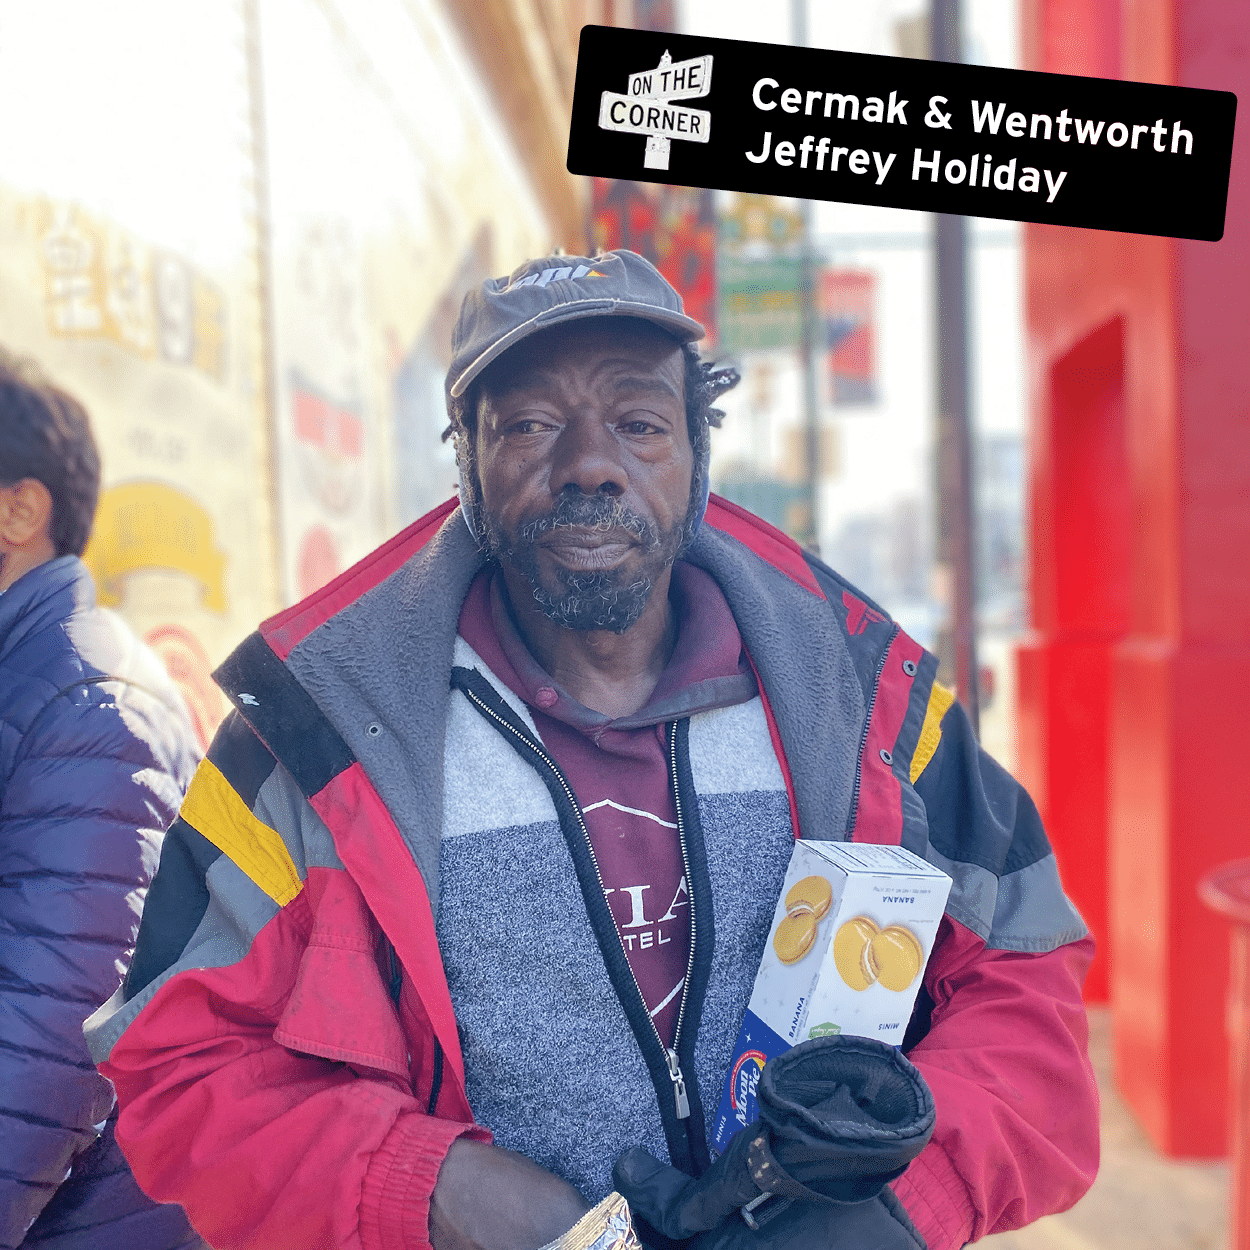 Jeffrey Holiday at the corner of Cermak and Wentworth in Chinatown, Chicago